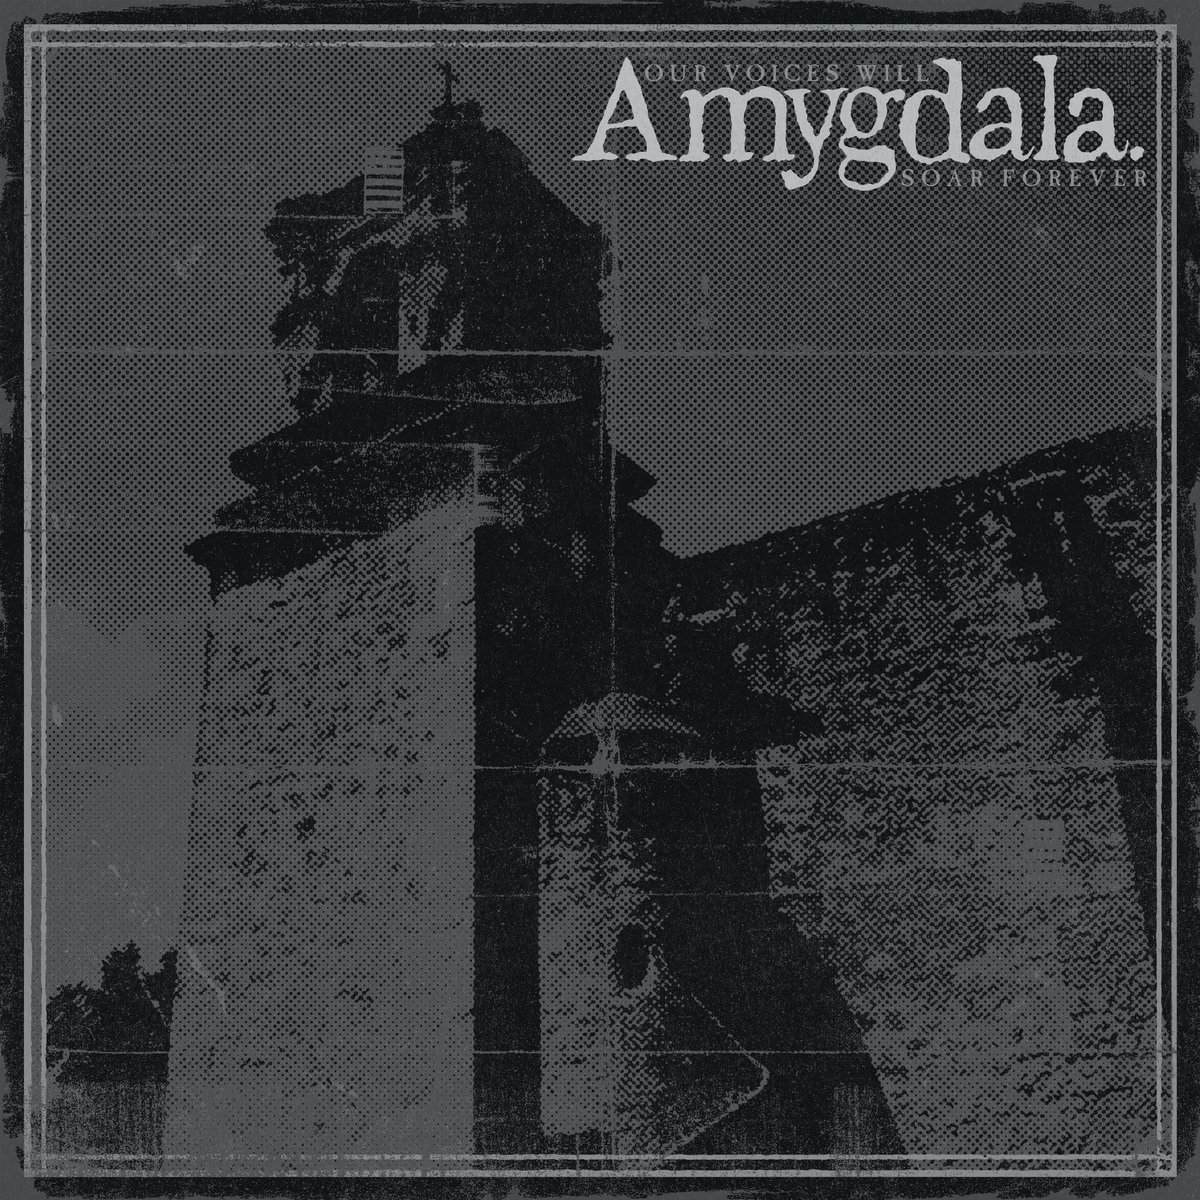 Amygdala - Our Voices Will Soar Forever LP